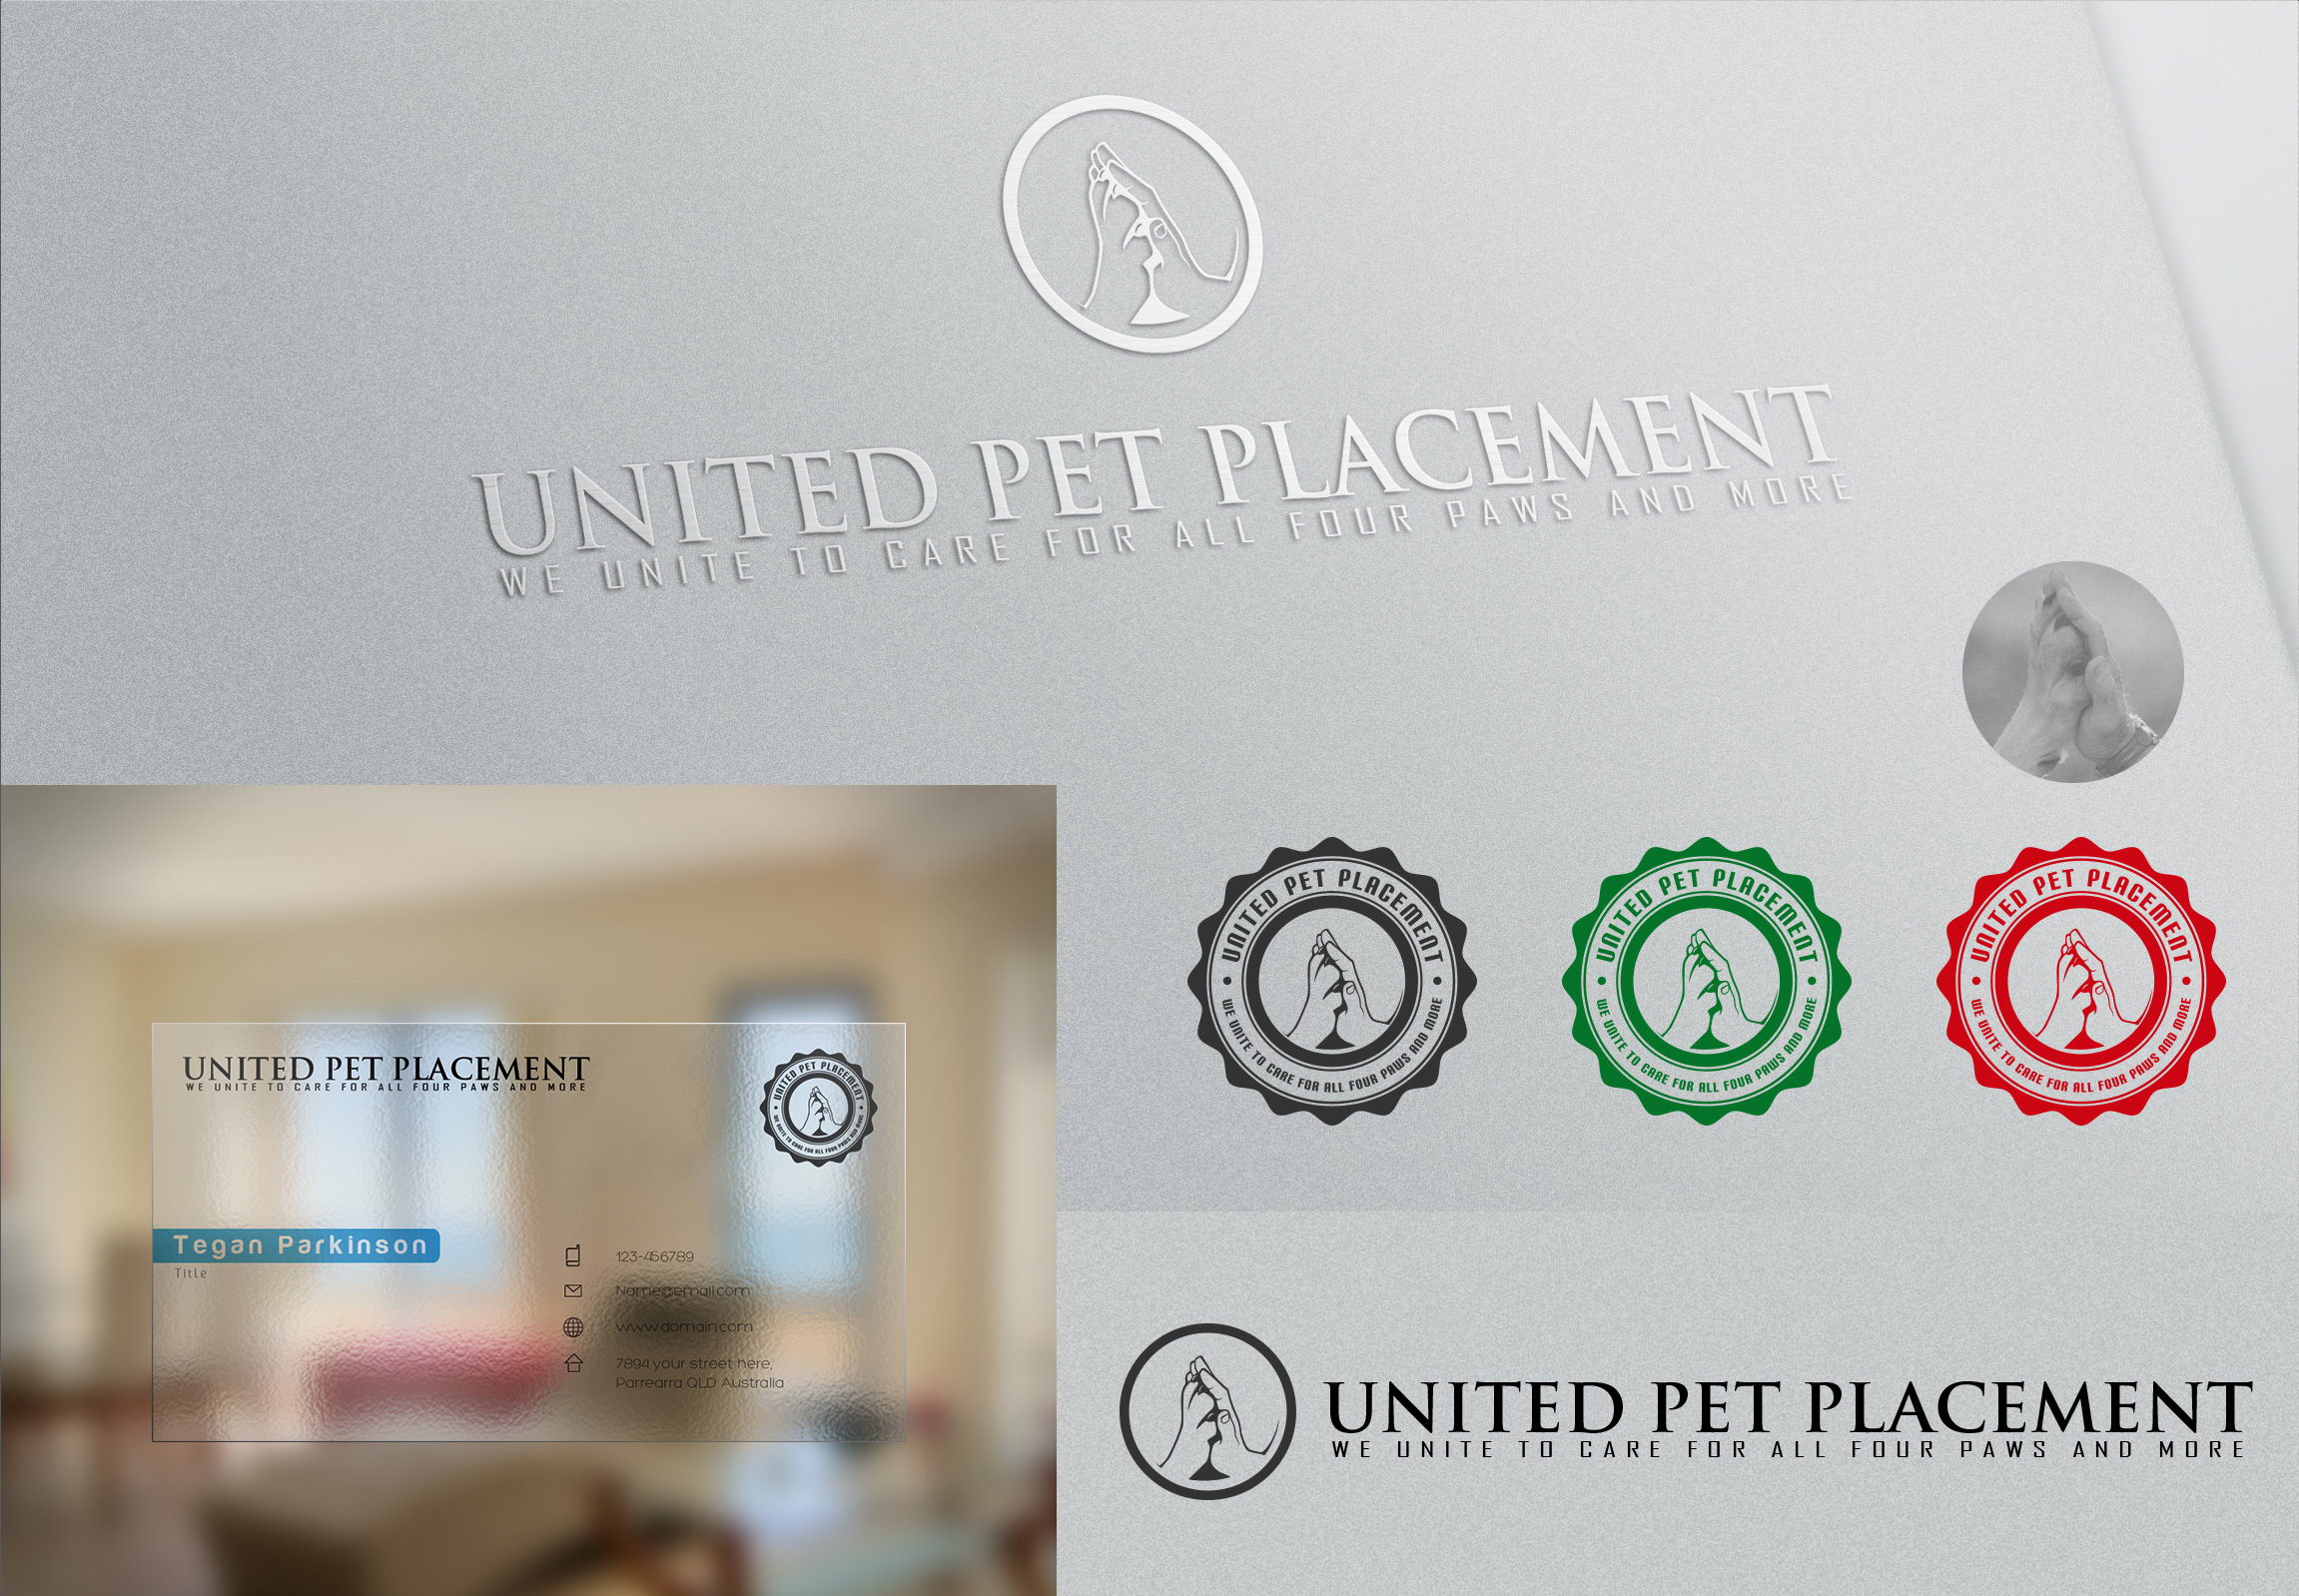 Logo Design by olii - Entry No. 45 in the Logo Design Contest Artistic Logo Design for united pet placement.